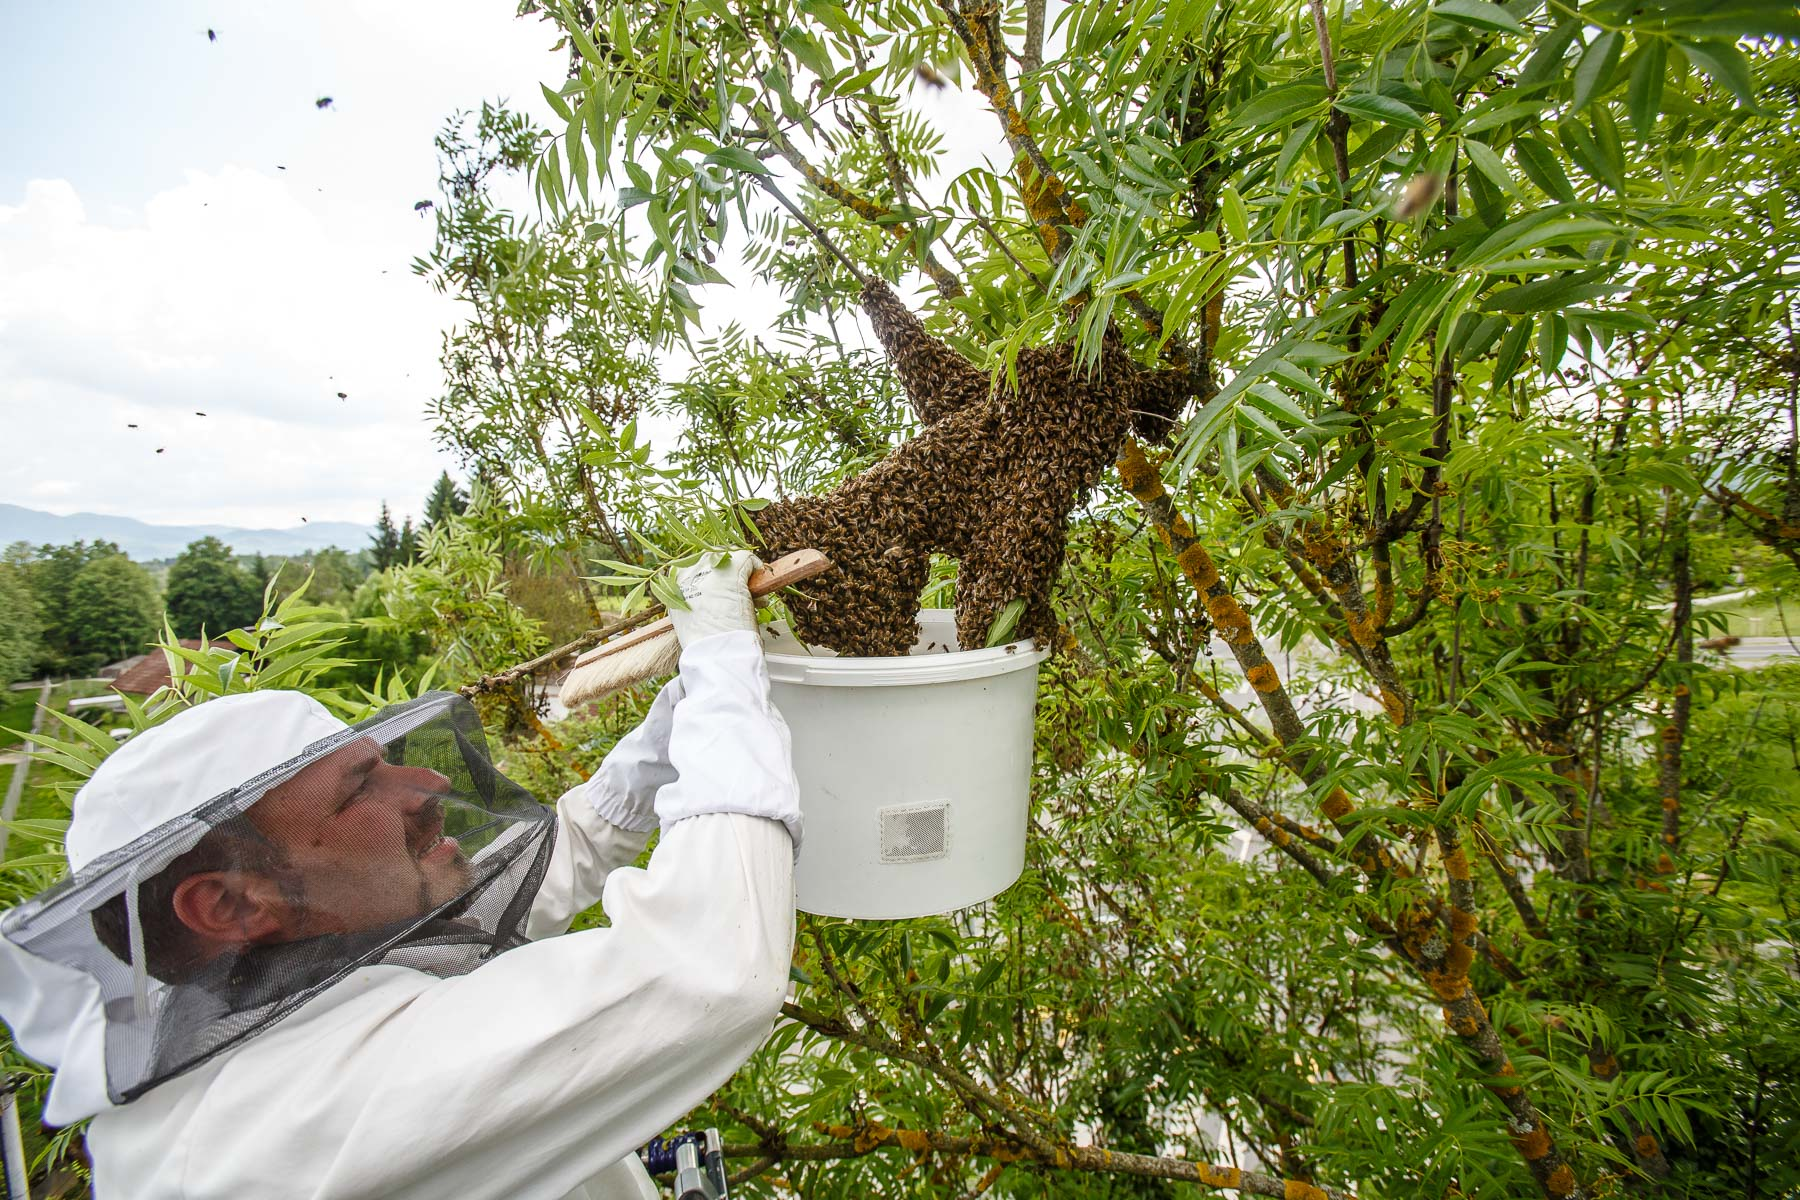 Trušnovec removes a runaway swarm from a treetop by droping as many bees into a bucket, hoping to trap the queen and make the rest of the bees follow. In picking up swarms he often needs help of local fire departments that provide a ladder.